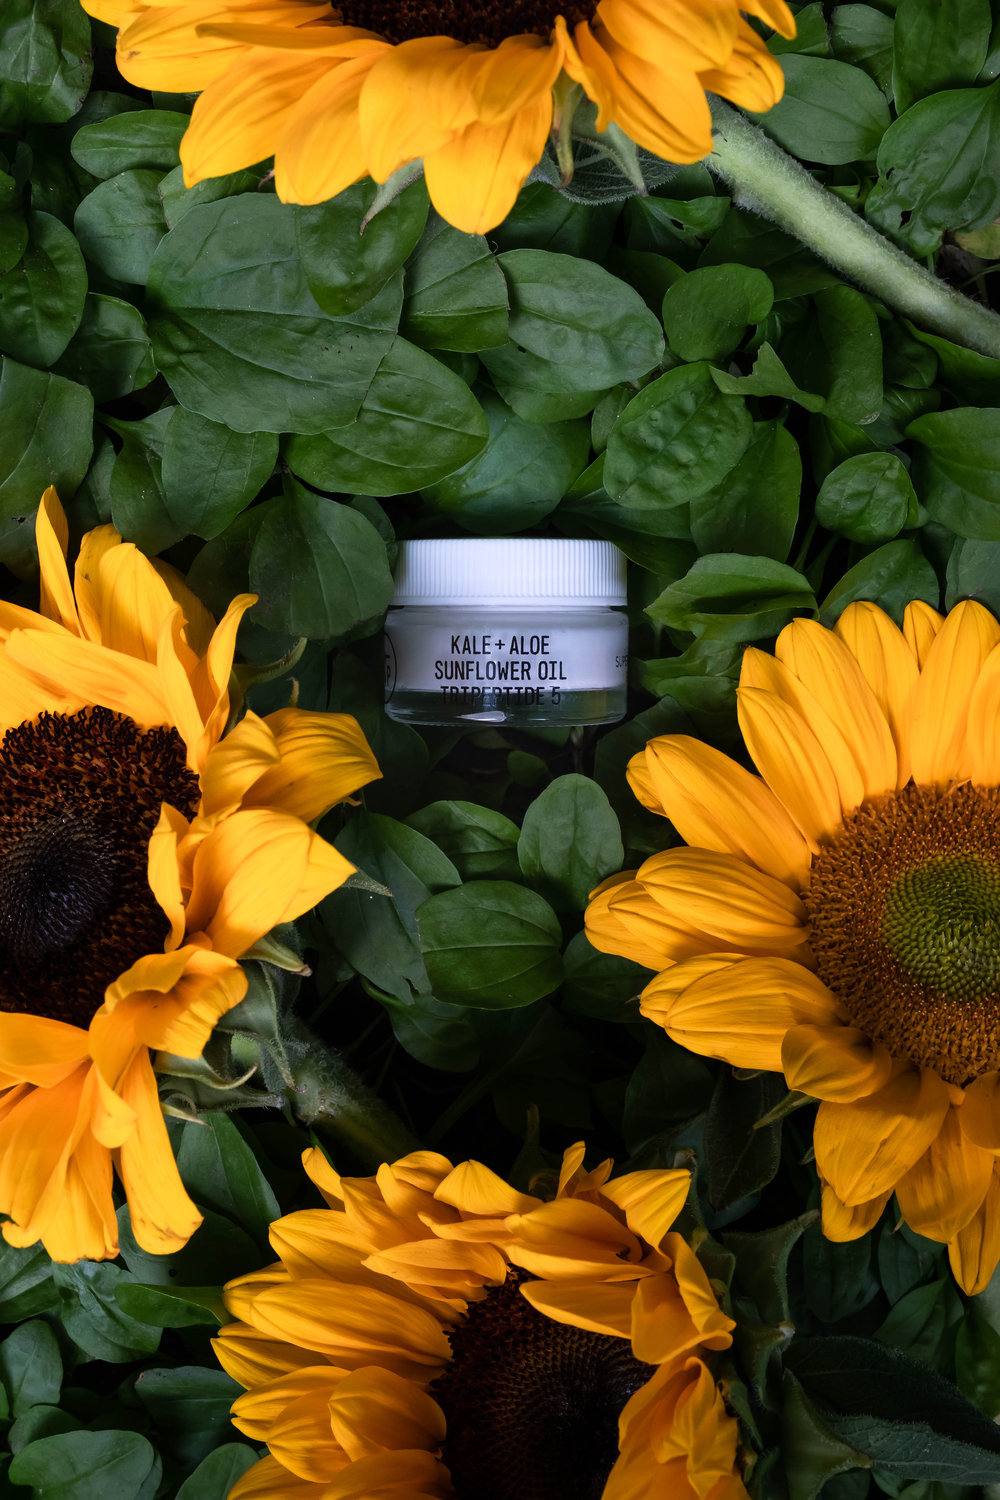 ROSE & IVY Journal The Beauty Ingredient Sunflower Oil